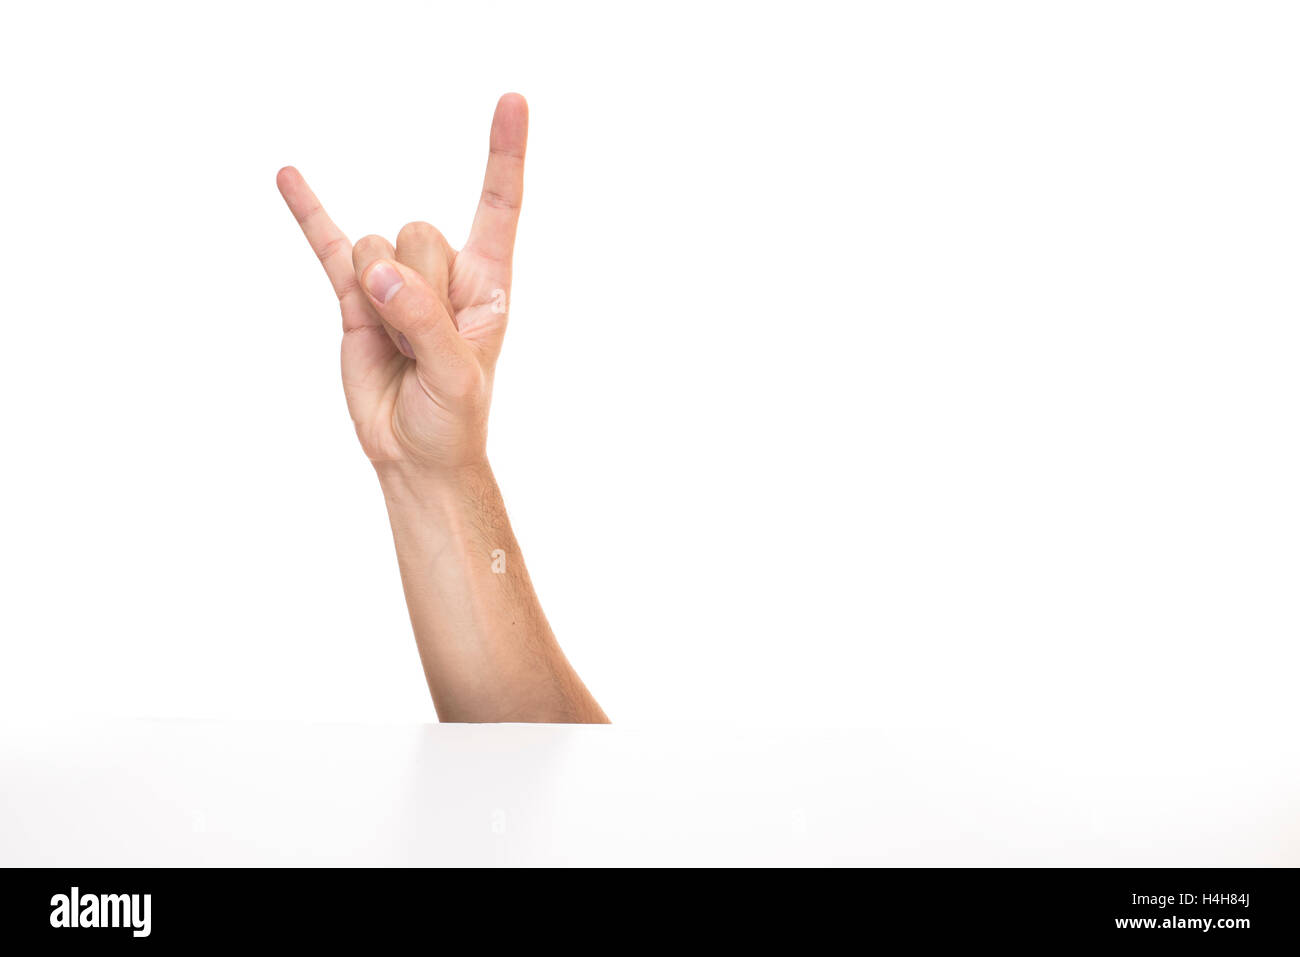 Hand shows devil horns gesture isolated on white background hand shows devil horns gesture isolated on white background rocker sign biocorpaavc Gallery